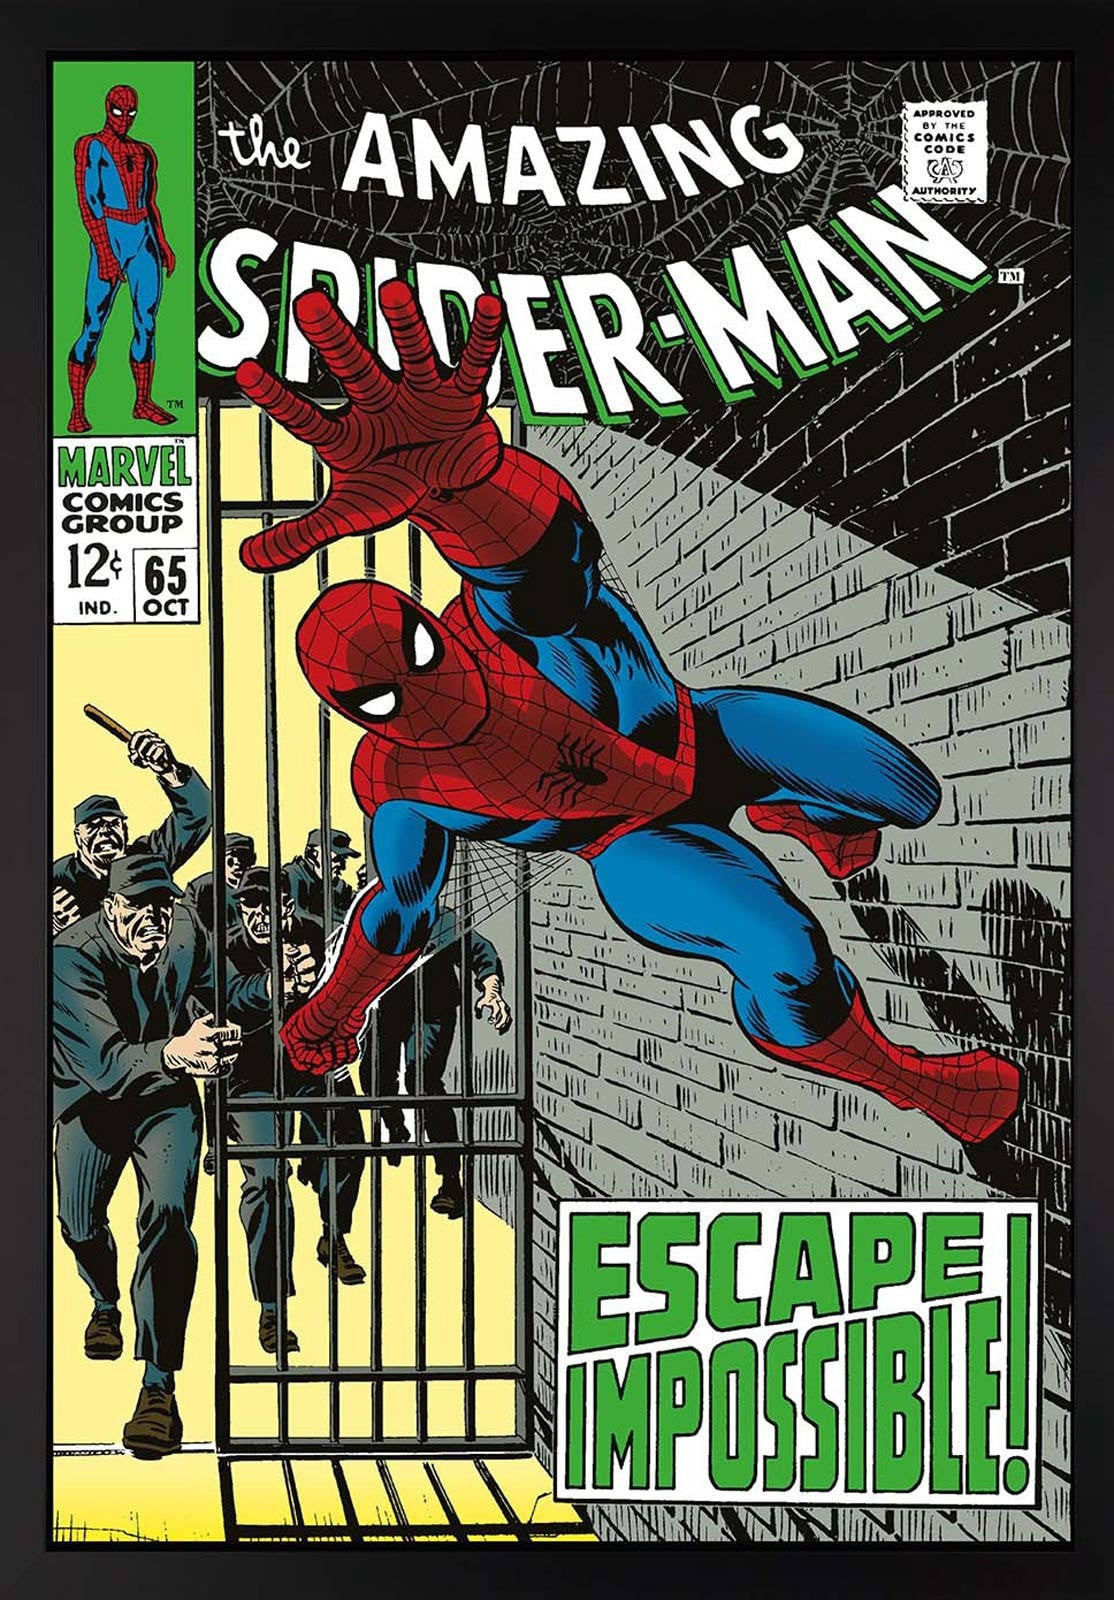 The Amazing Spider-Man #65 - Escape Impossible! Stan Lee